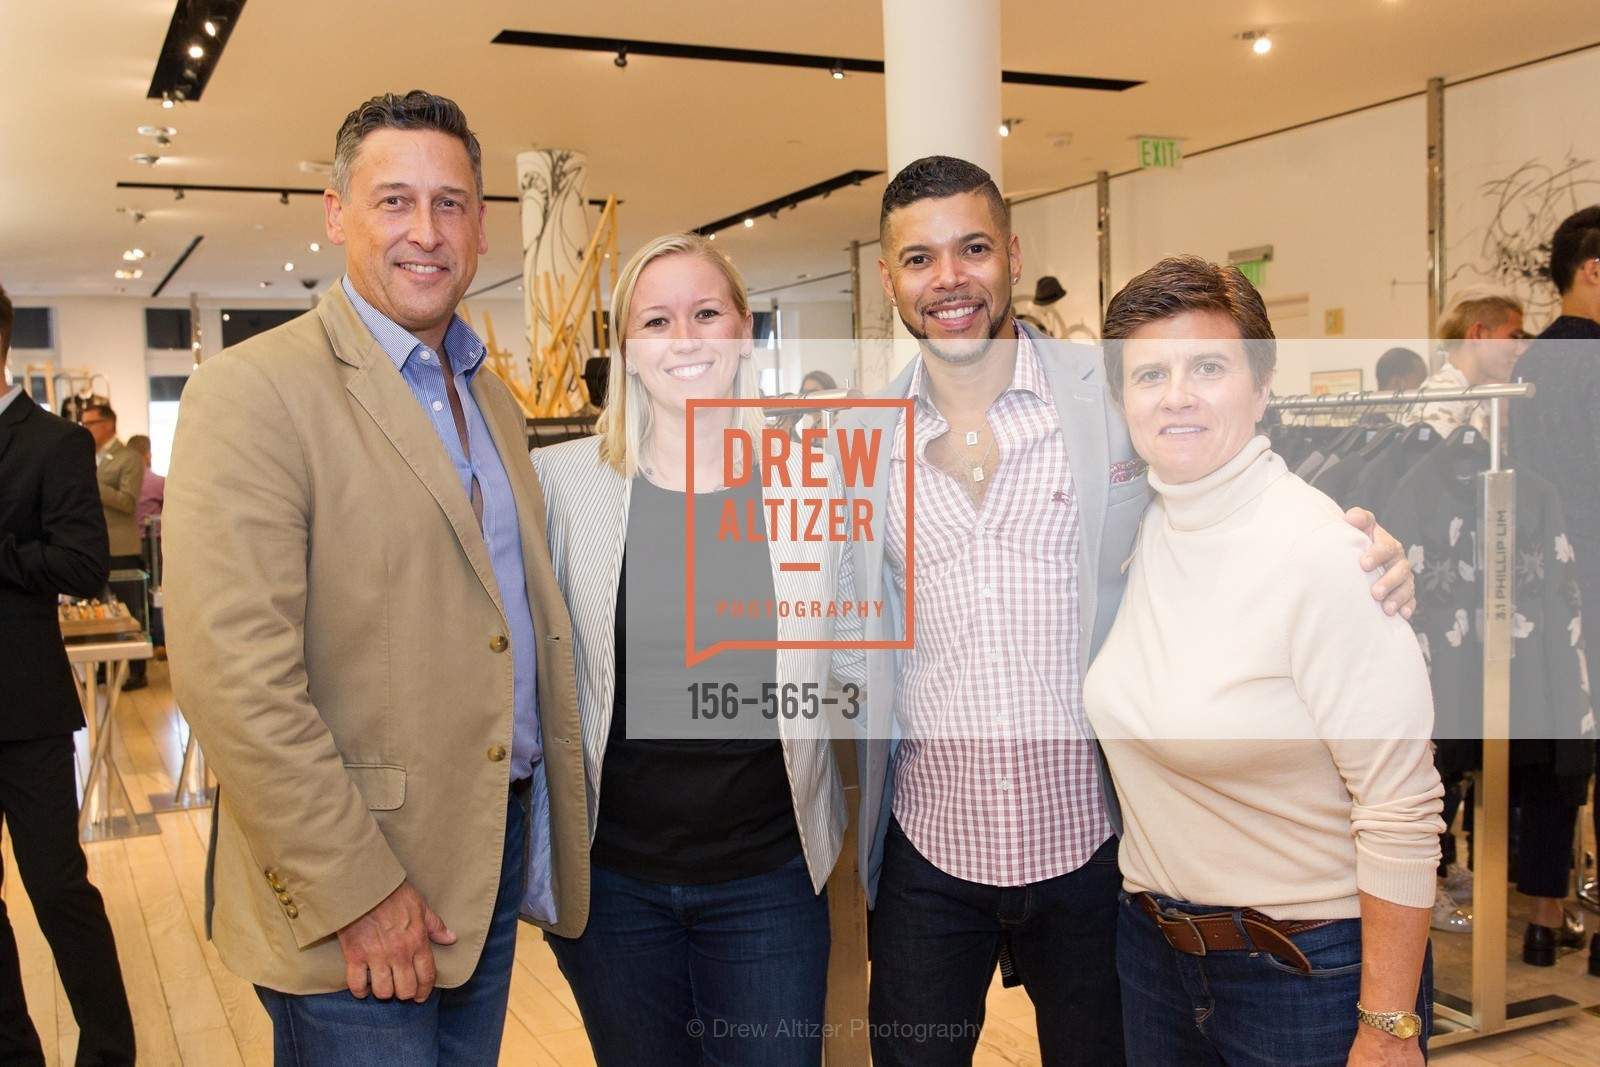 Kevin Patsel, Wilson Cruz, Kathy Paspali, GLAAD GALA Kick-Off Party Hosted by SAKS FIFTH AVENUE, Saks Fifth Avenue. 384 Post Street, September 12th, 2014,Drew Altizer, Drew Altizer Photography, full-service agency, private events, San Francisco photographer, photographer california